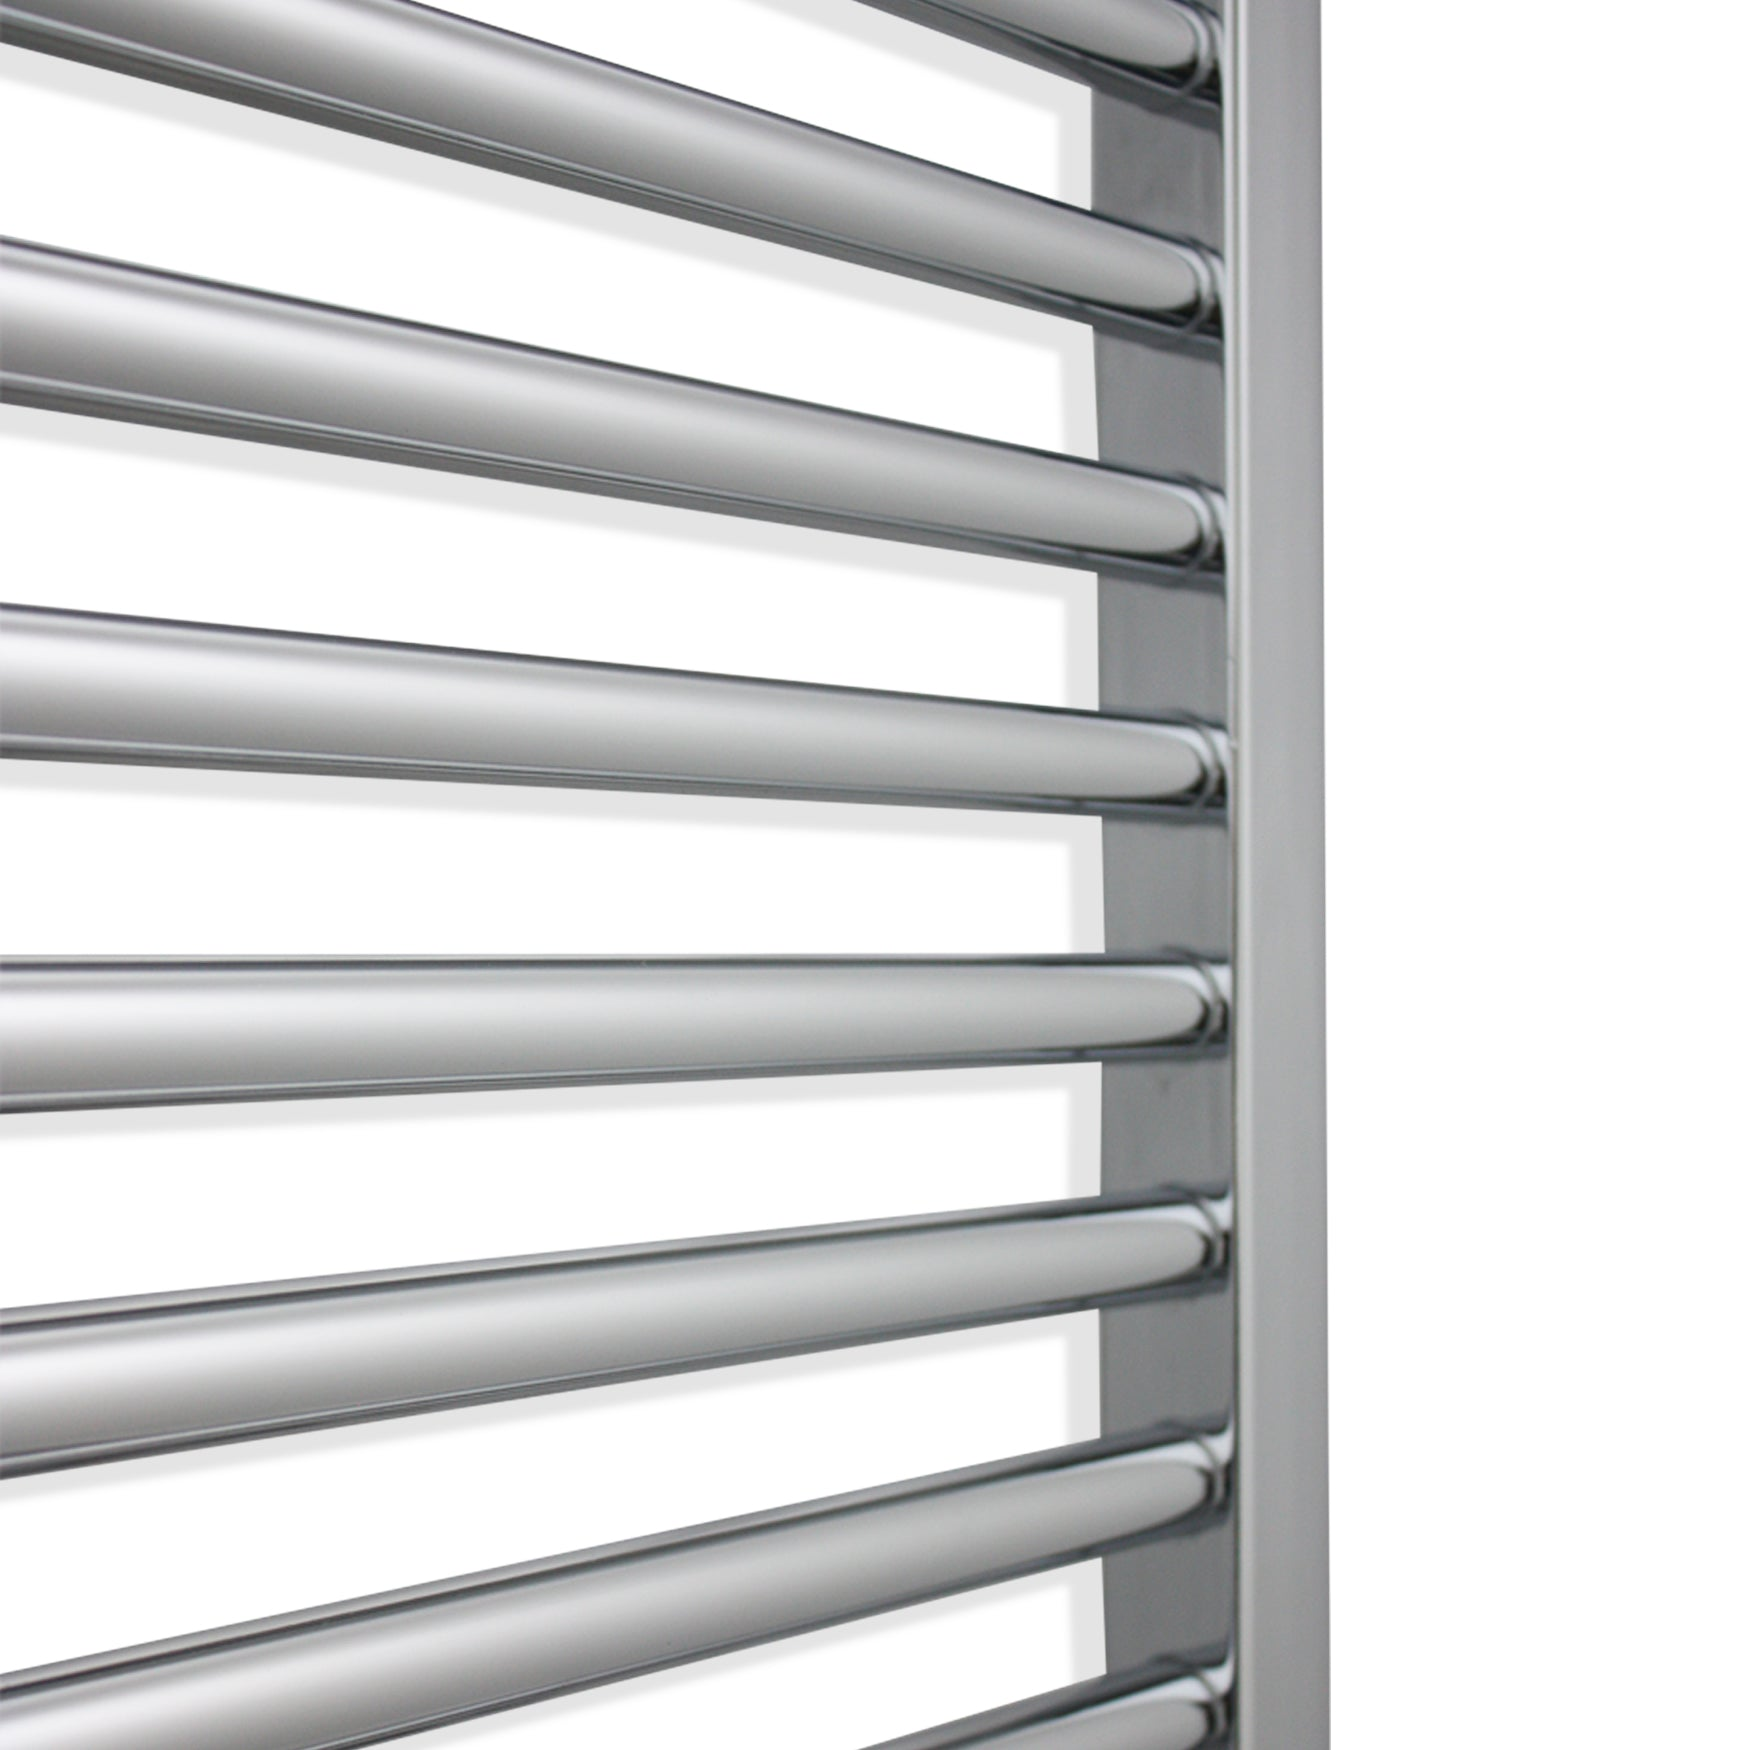 300mm Wide 1800mm High Flat Chrome Pre-Filled Electric Heated Towel Rail Radiator HTR